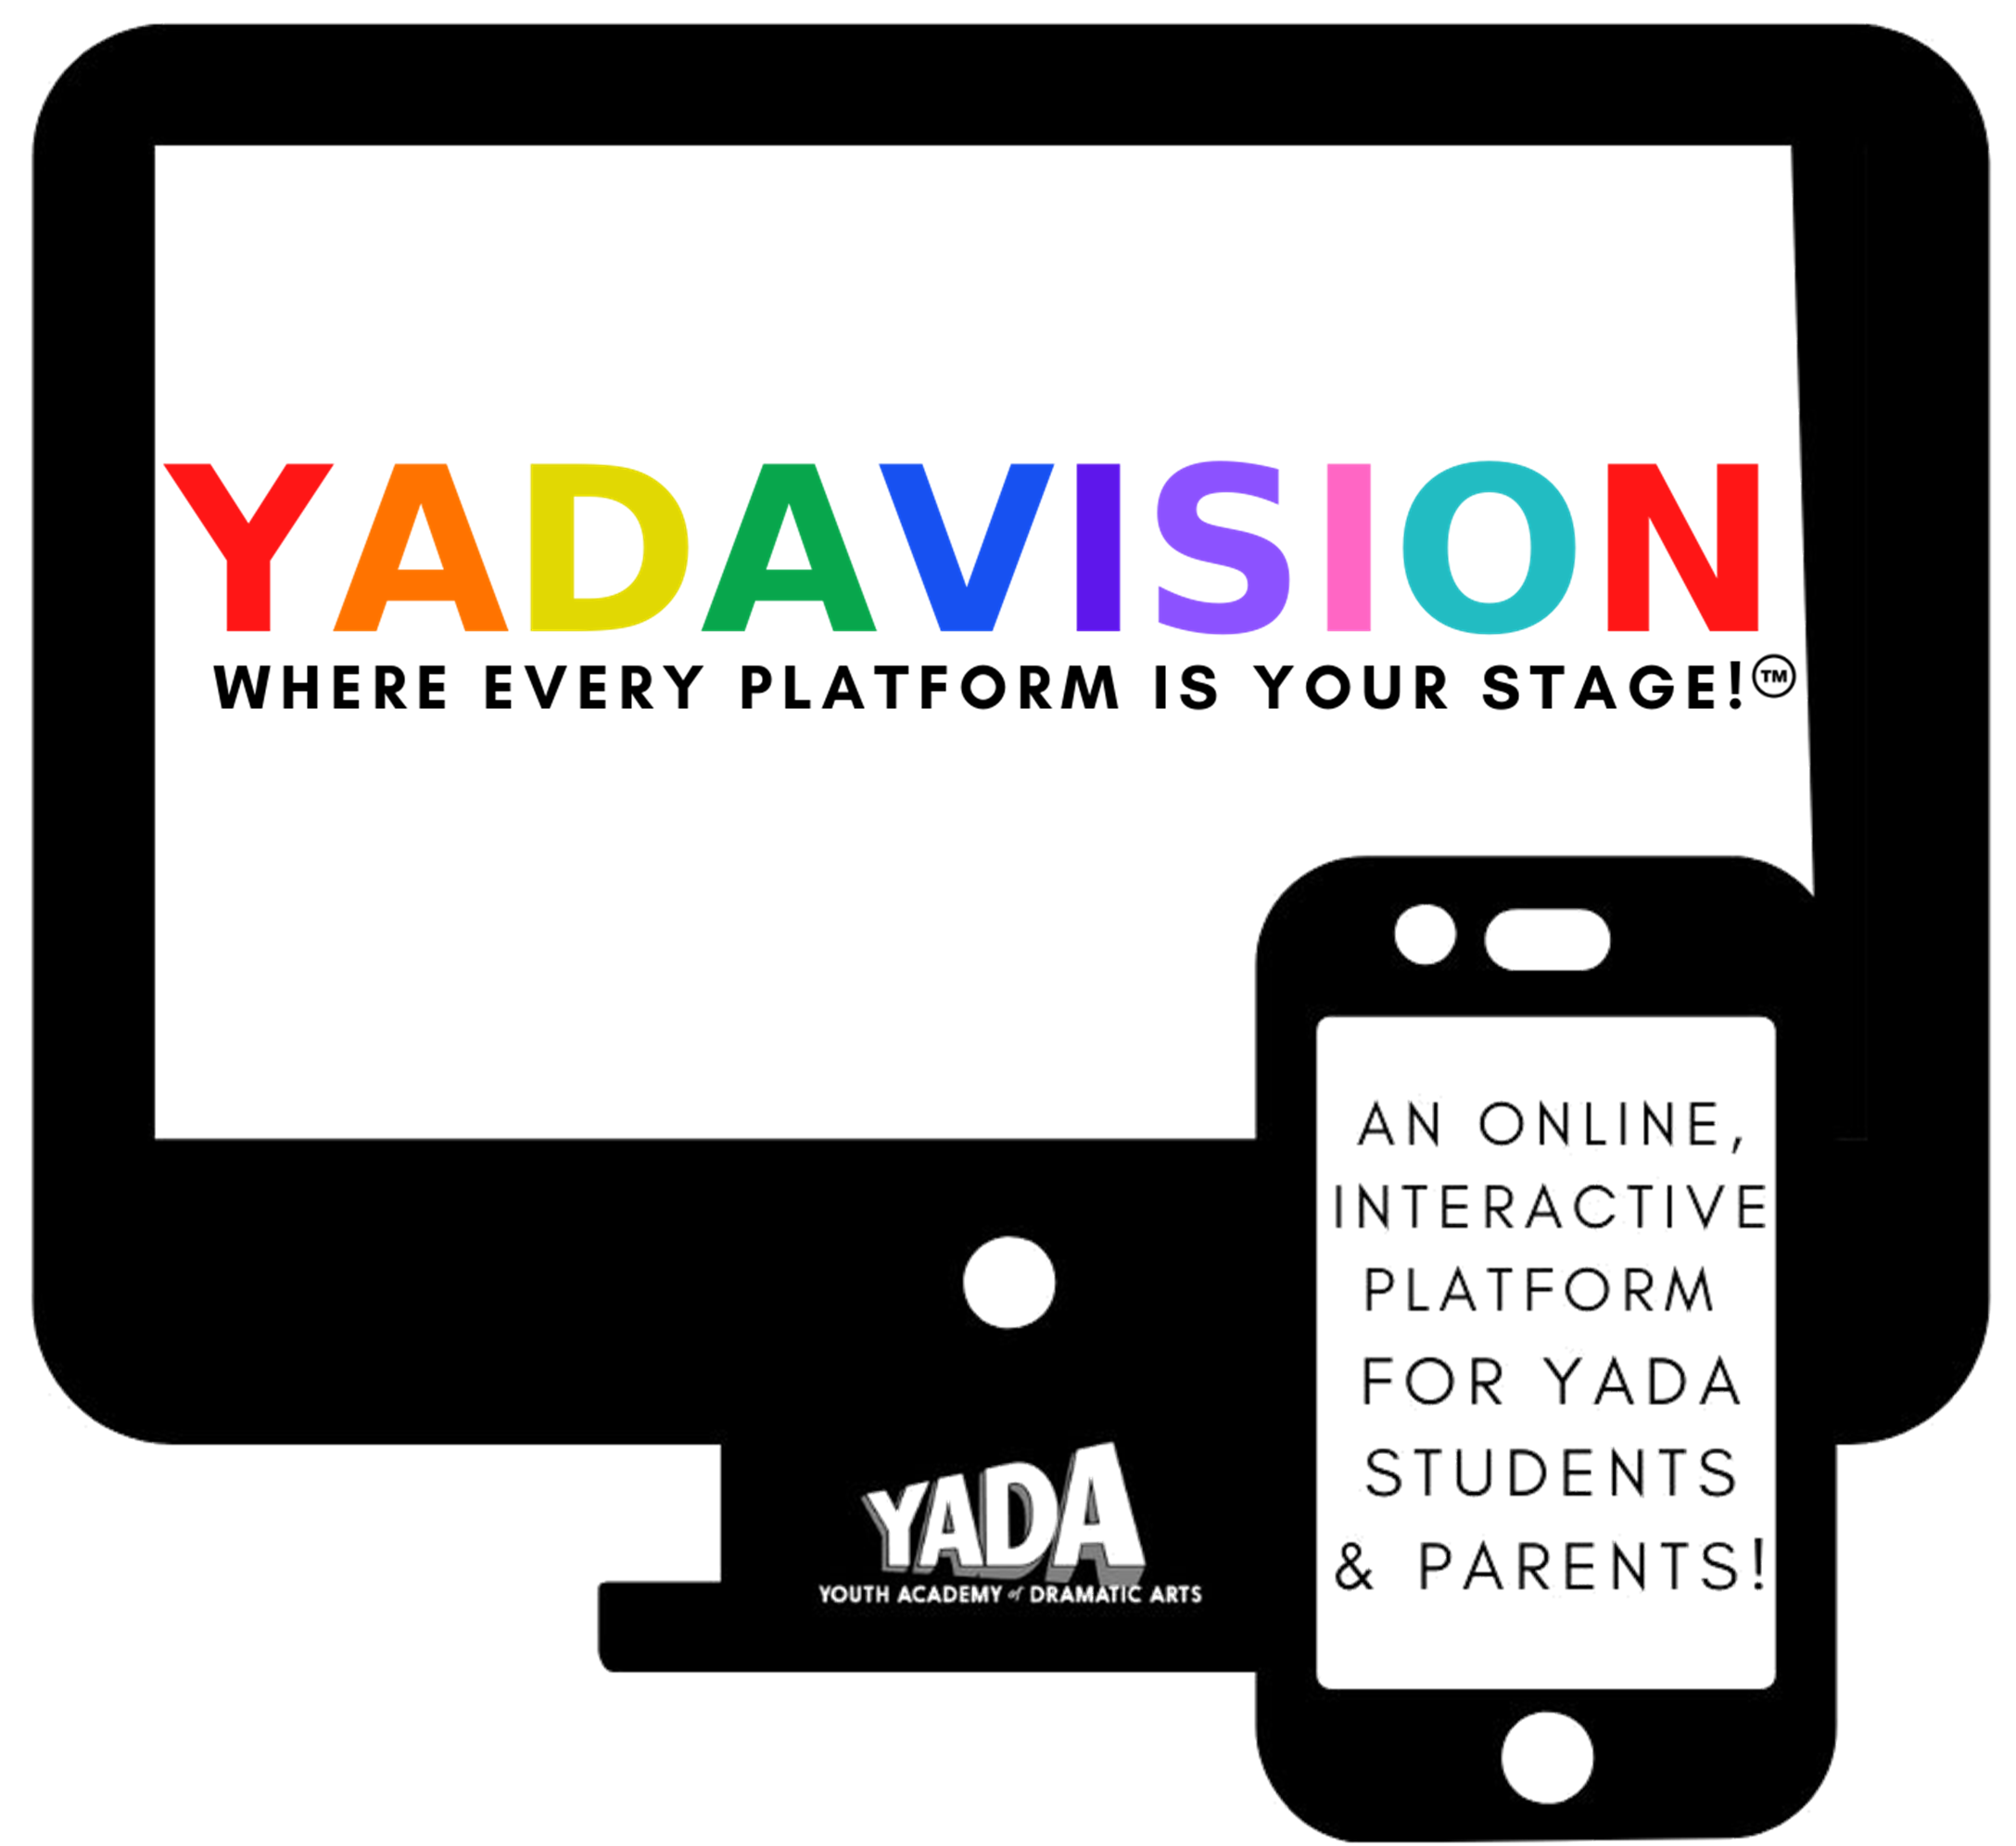 YADAVISION Where Every Platform Is Your Stage TM